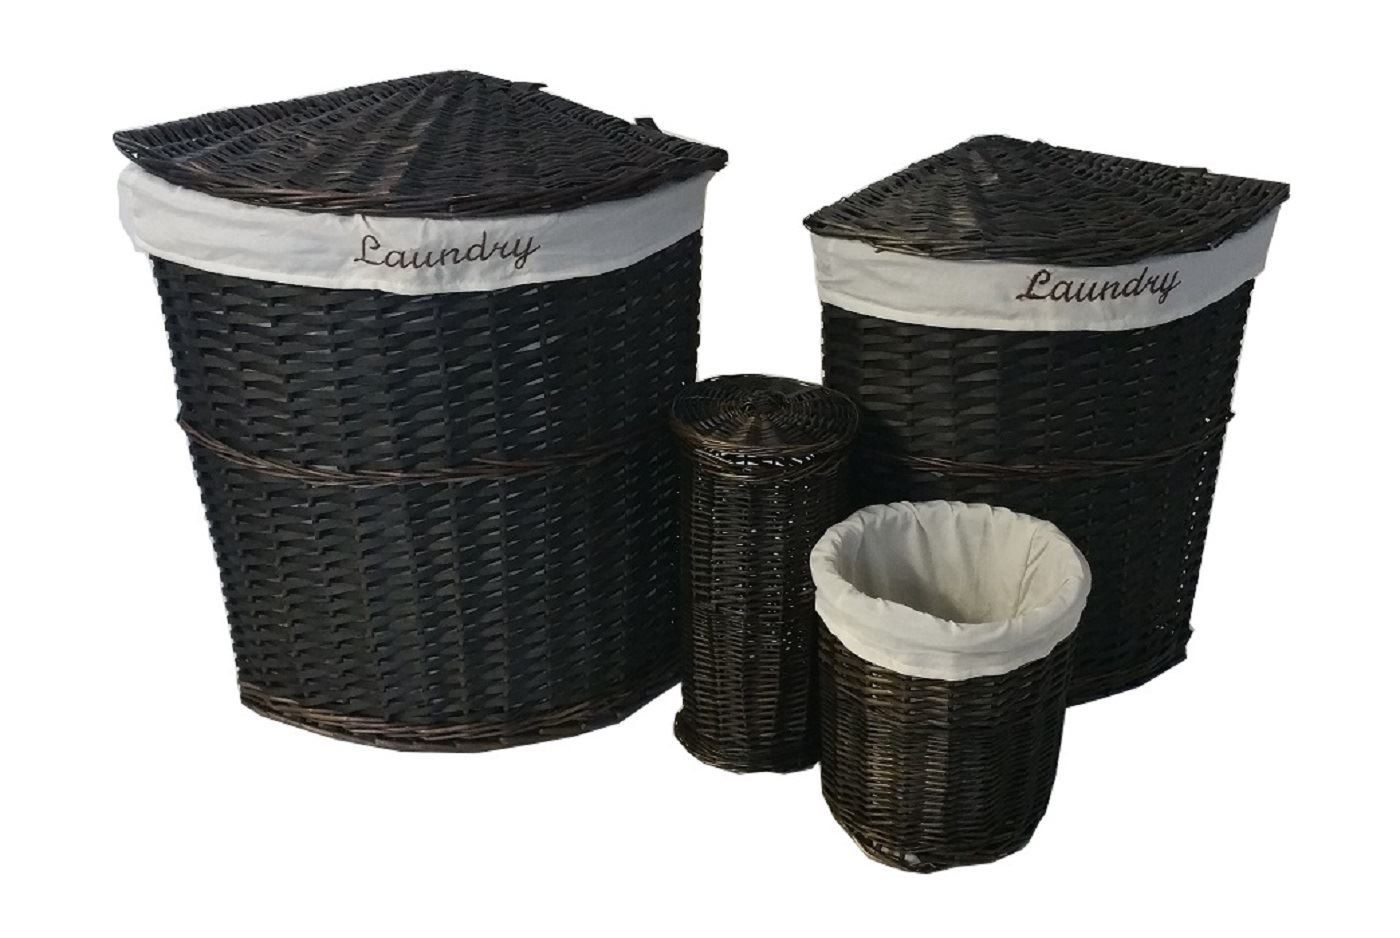 New Unlike Laundry Baskets, Laundry Hampers Are A Little Easier On The Eyes As They Are Taller, More Narrow, And Often Have A Lid Many Also Come With Multiple  Which